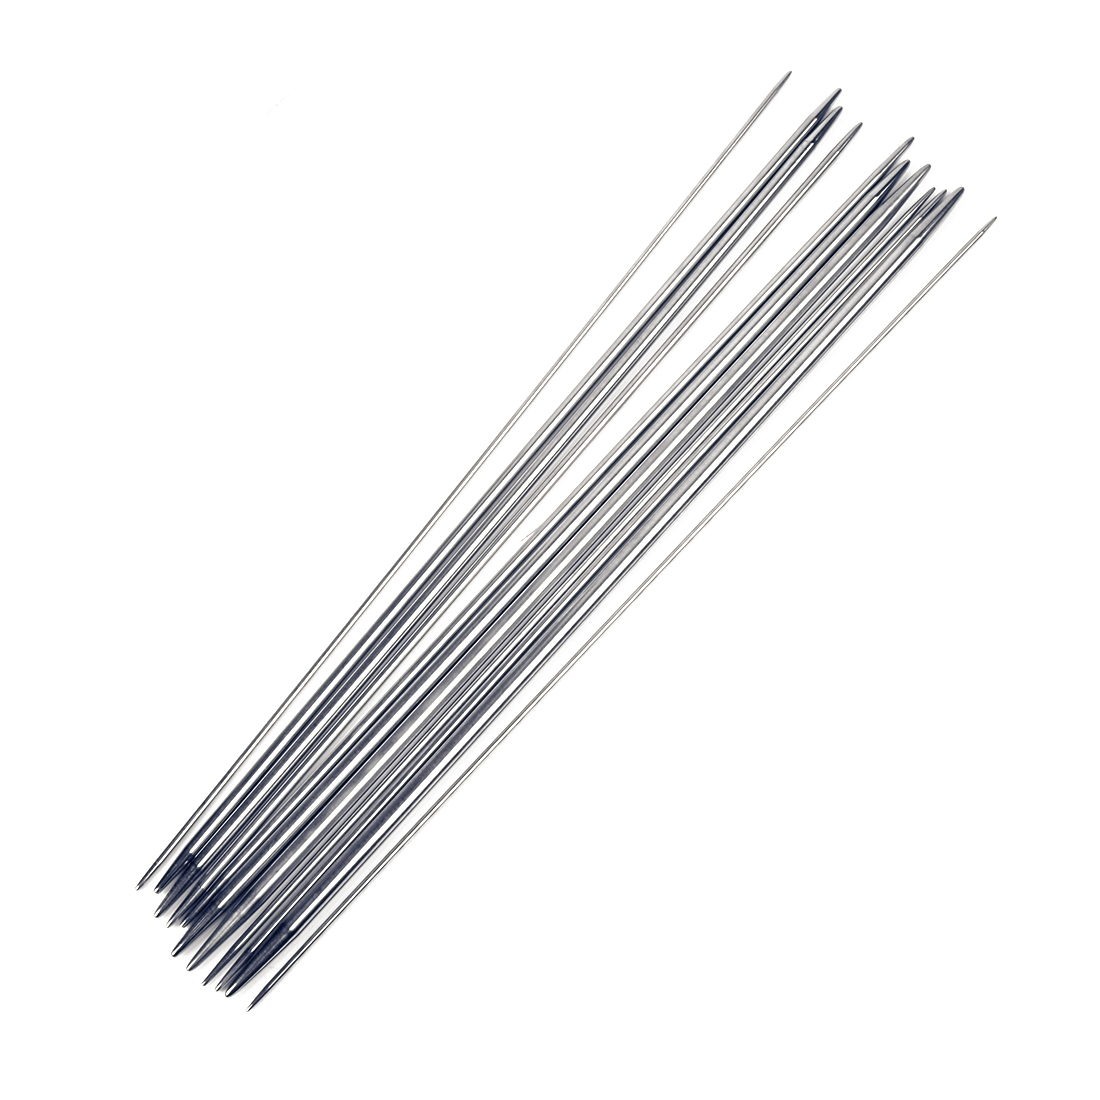 Stainless Steel Double Pointed Knitting Needles Pins 1.5mm - 5mm Set 44 in 1